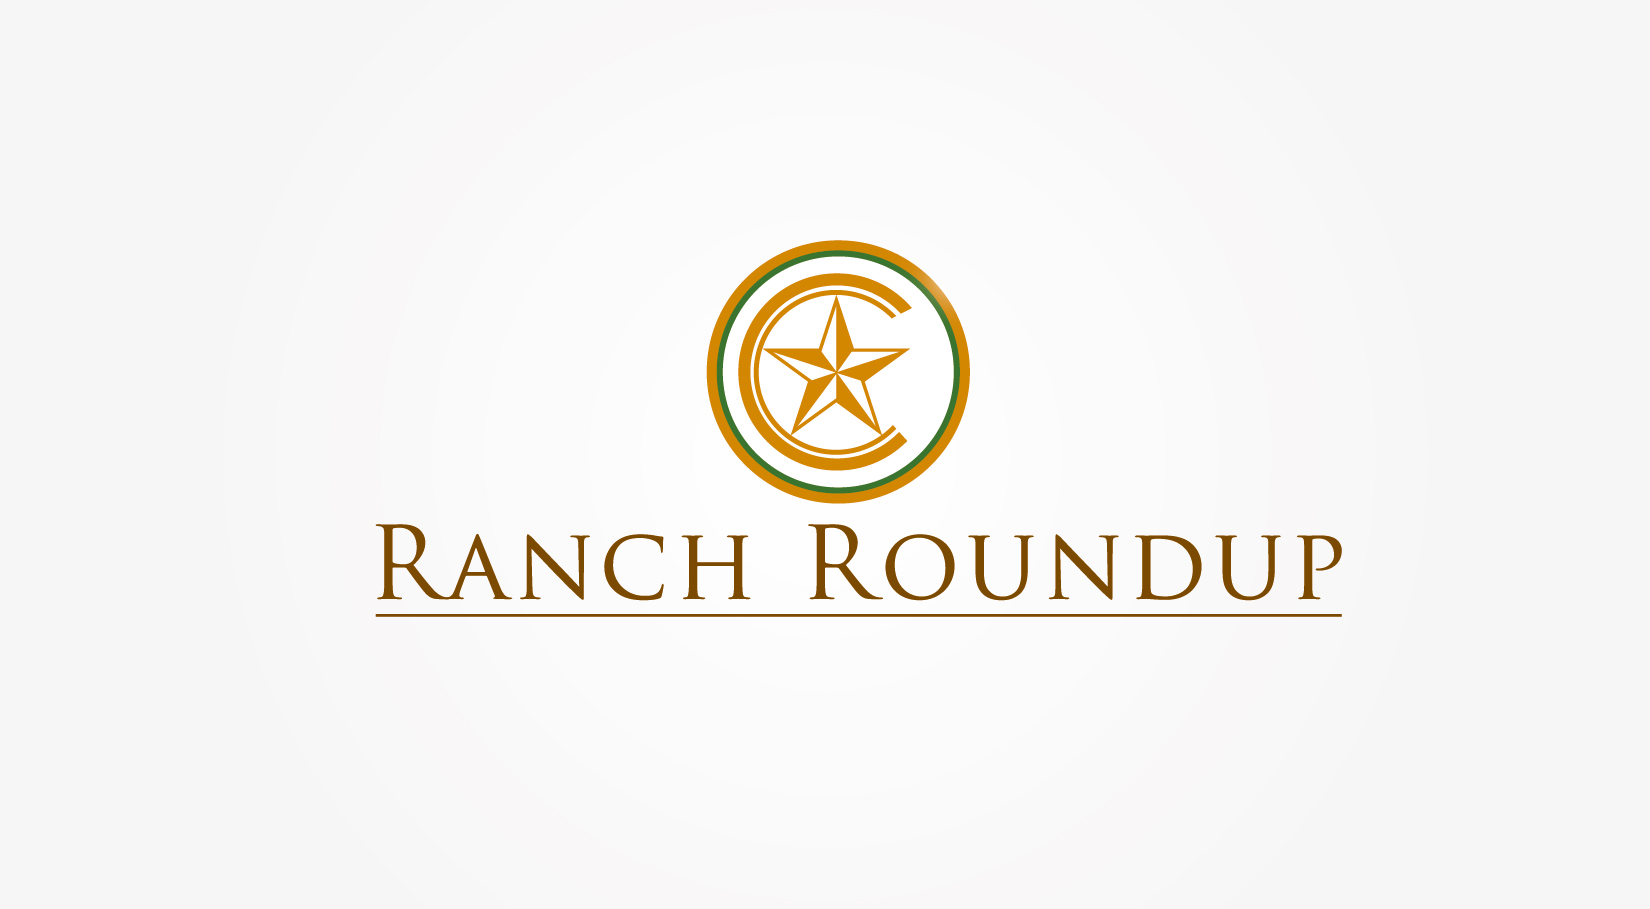 Logo Design by VENTSISLAV KOVACHEV - Entry No. 16 in the Logo Design Contest Captivating Logo Design for Ranch Roundup.